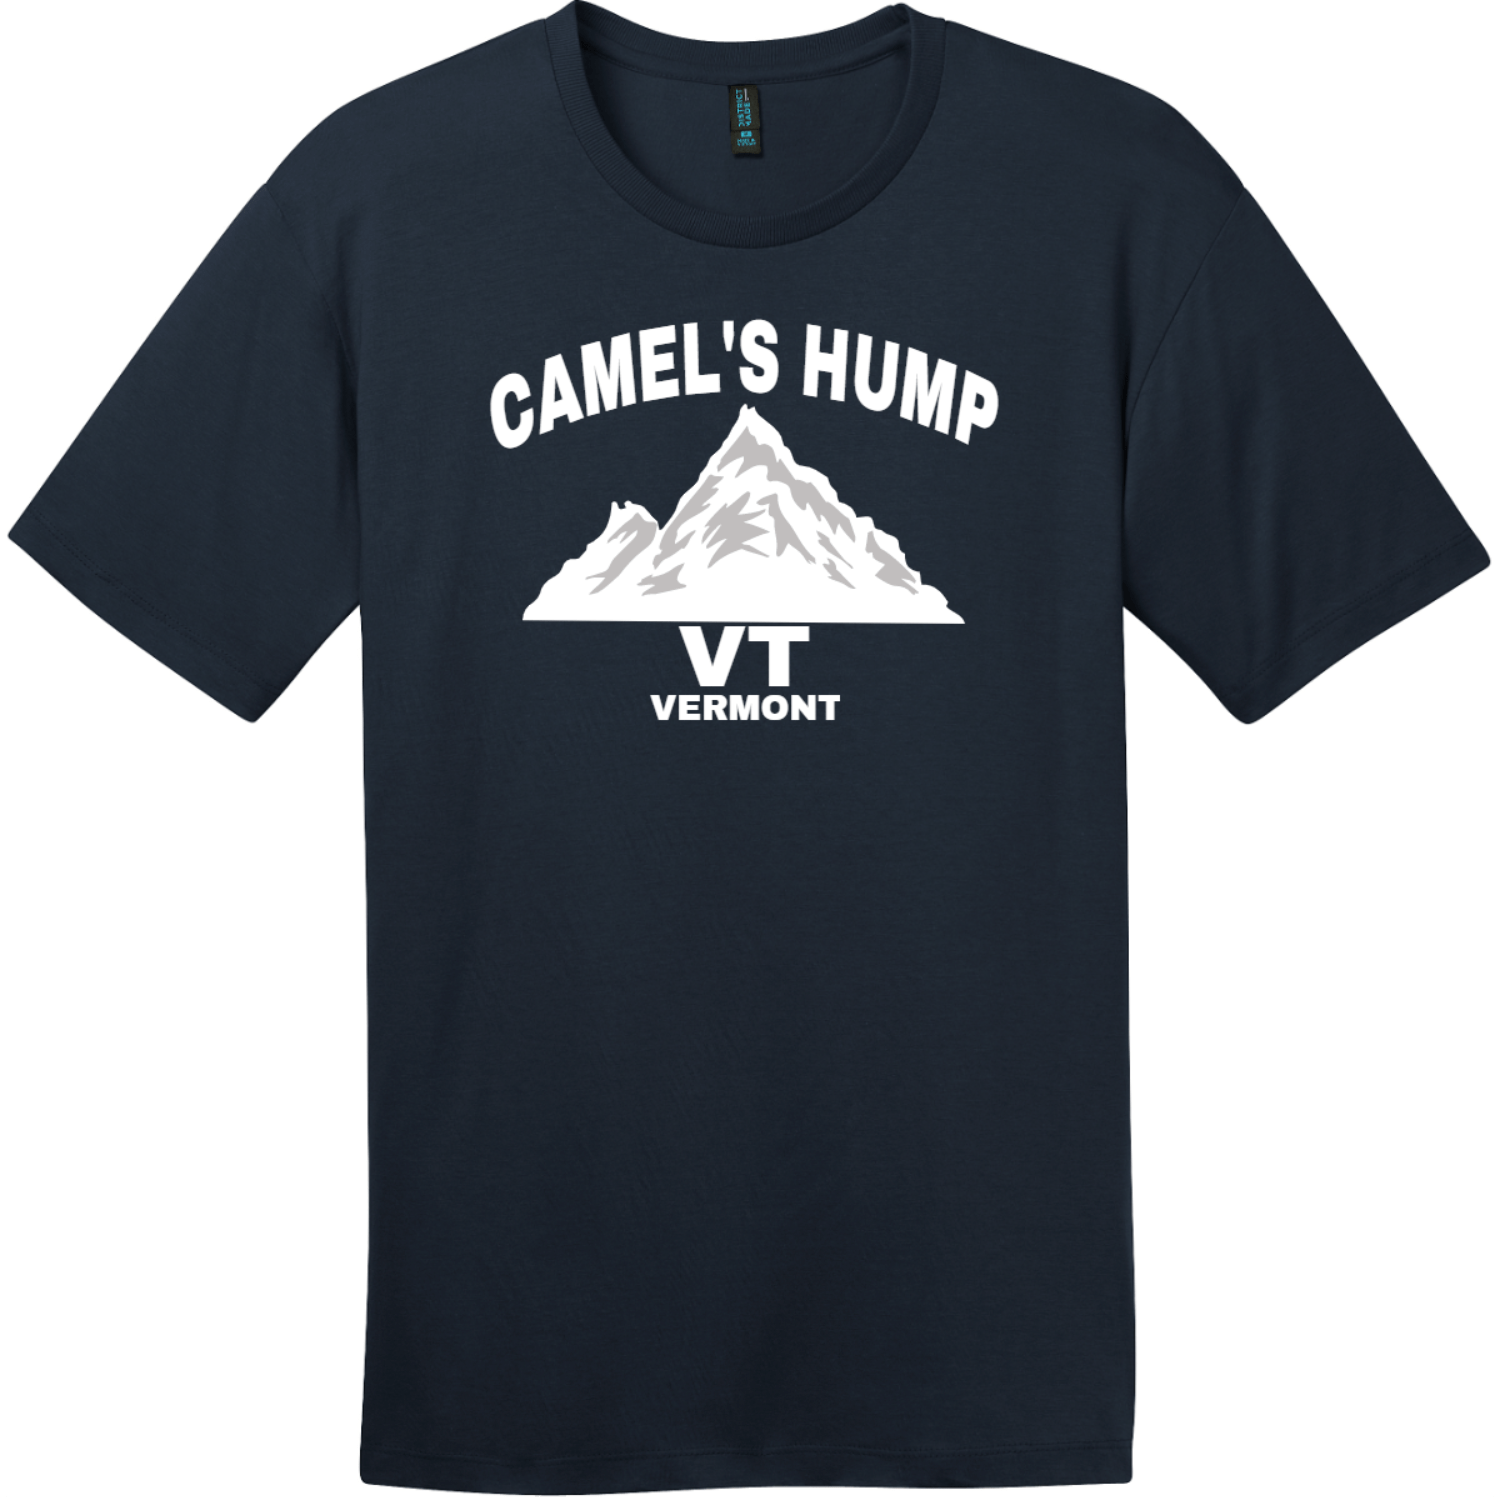 Camel's Hump Mountain Vermont T-Shirt New Navy District Perfect Weight Tee DT104